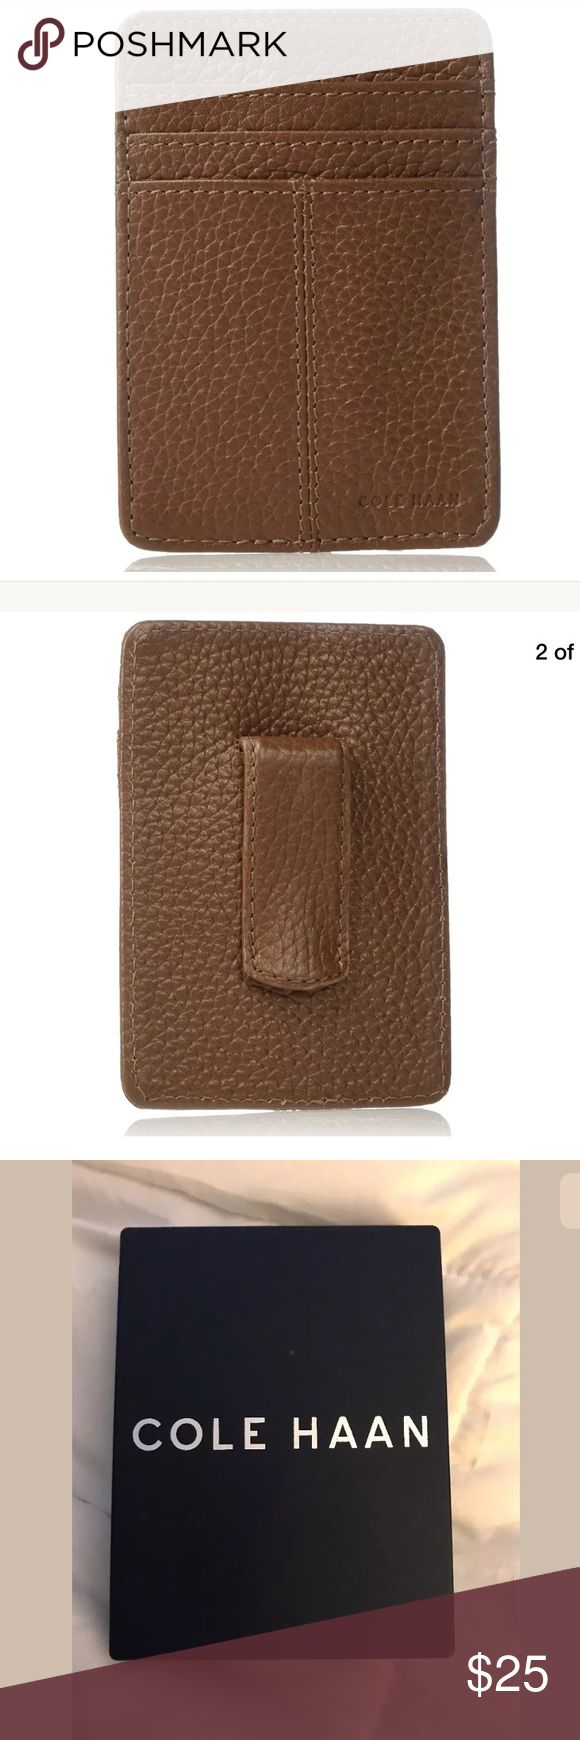 """Cole Haan mens money clip wallet leather NWT 100% genuine leather  Imported  100% polyester lining   4.25"""" high  3"""" wide  pockets: 3 card slots Cole Haan Bags Wallets"""